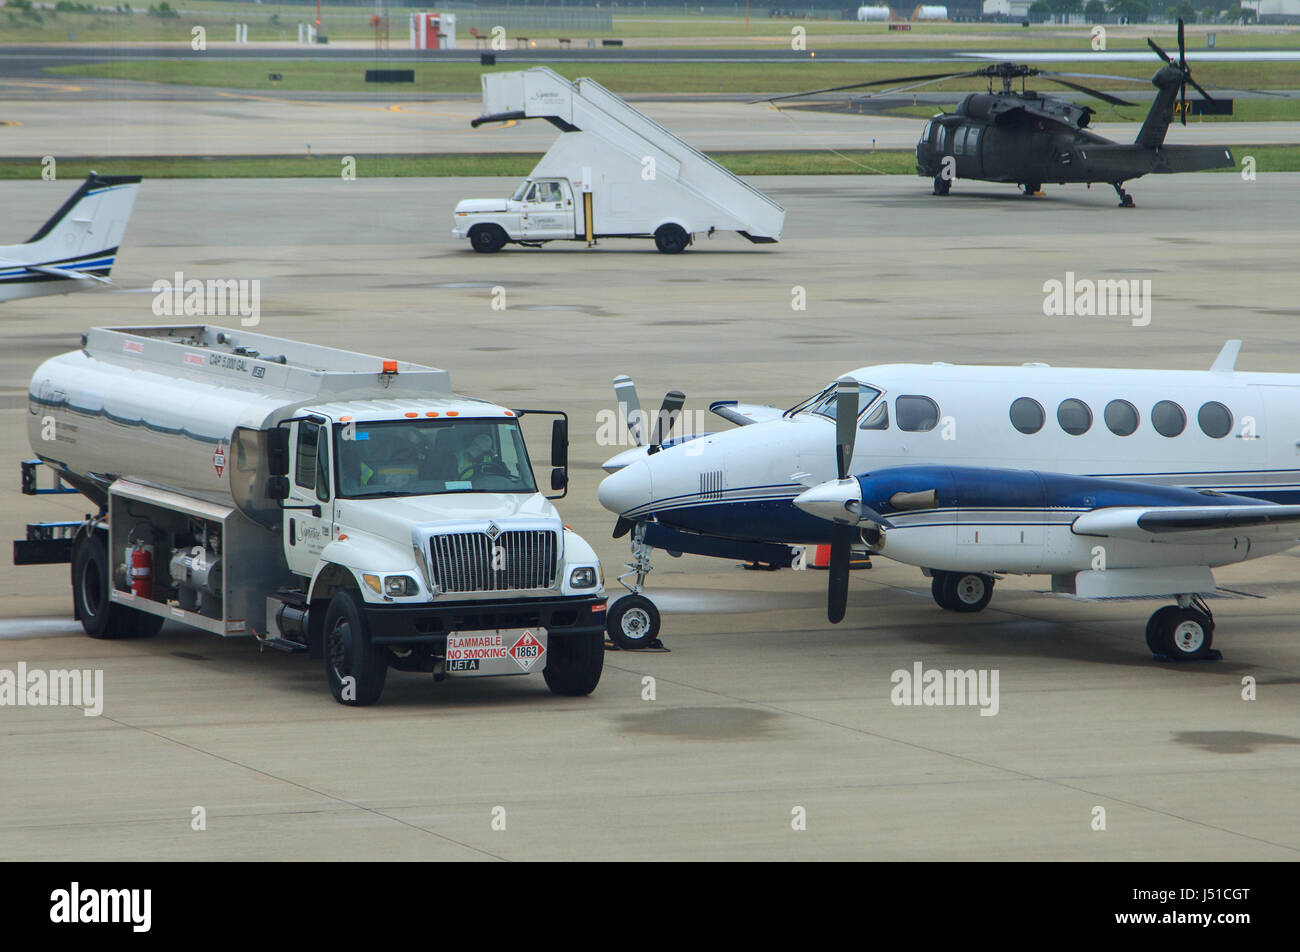 fuel truck and private plane on tarmac at general aviation terminal raleigh durham international airport - Stock Image